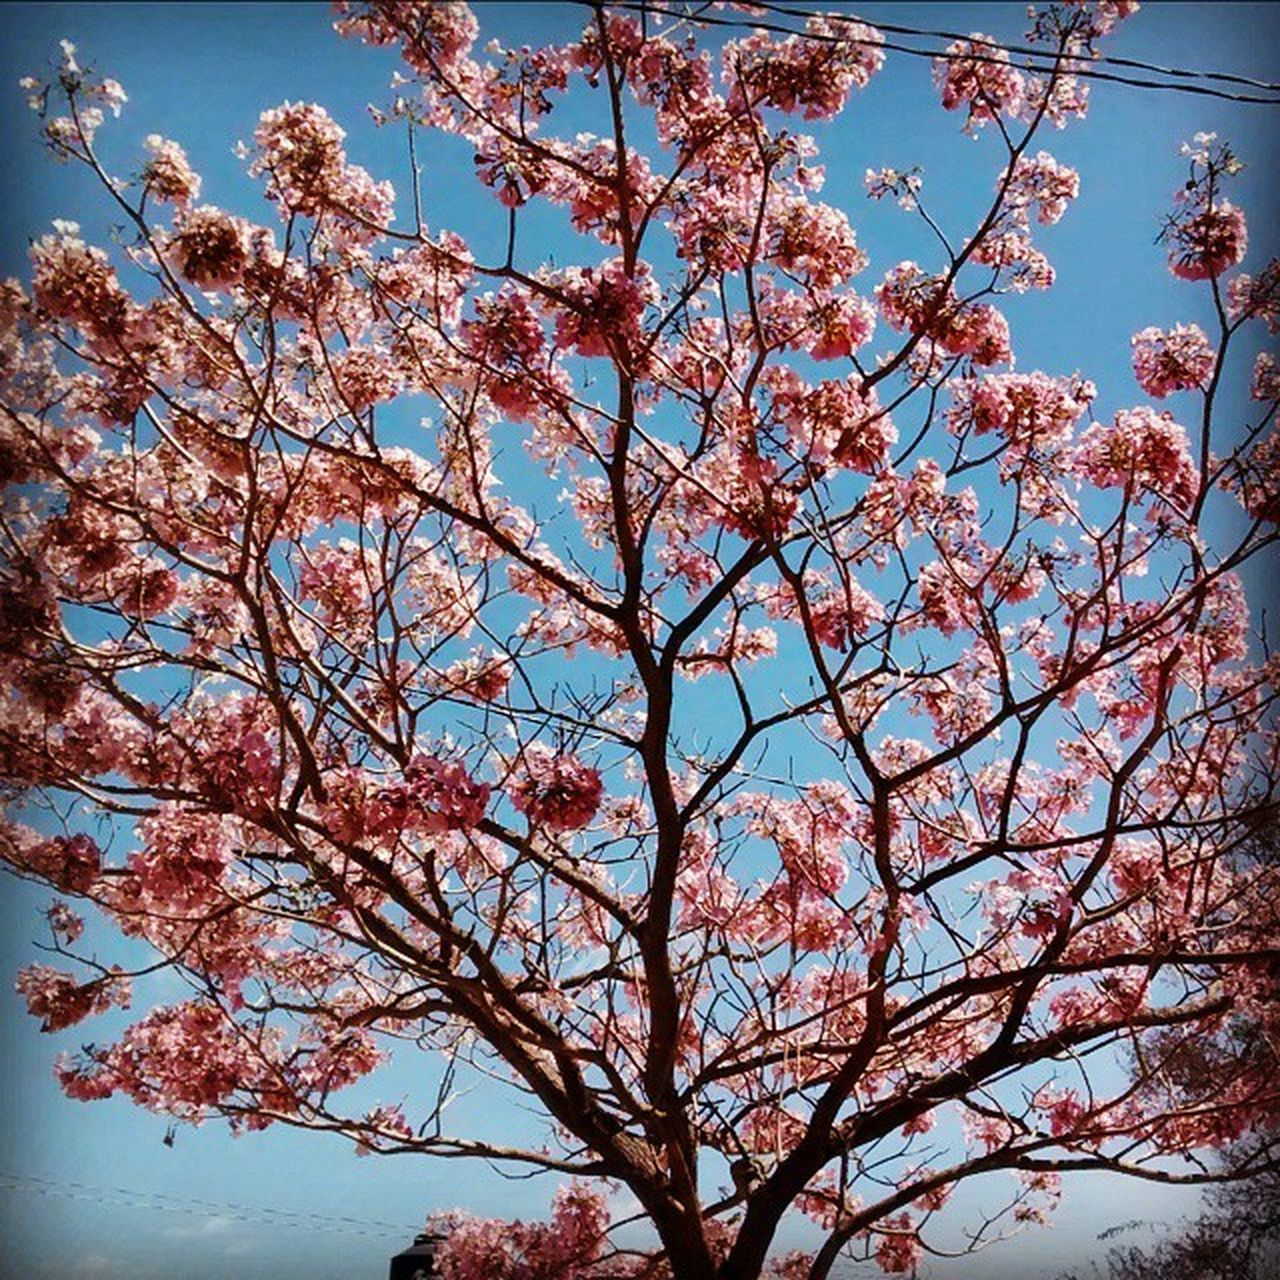 tree, flower, beauty in nature, branch, low angle view, growth, nature, springtime, sky, fragility, no people, blossom, day, outdoors, freshness, close-up